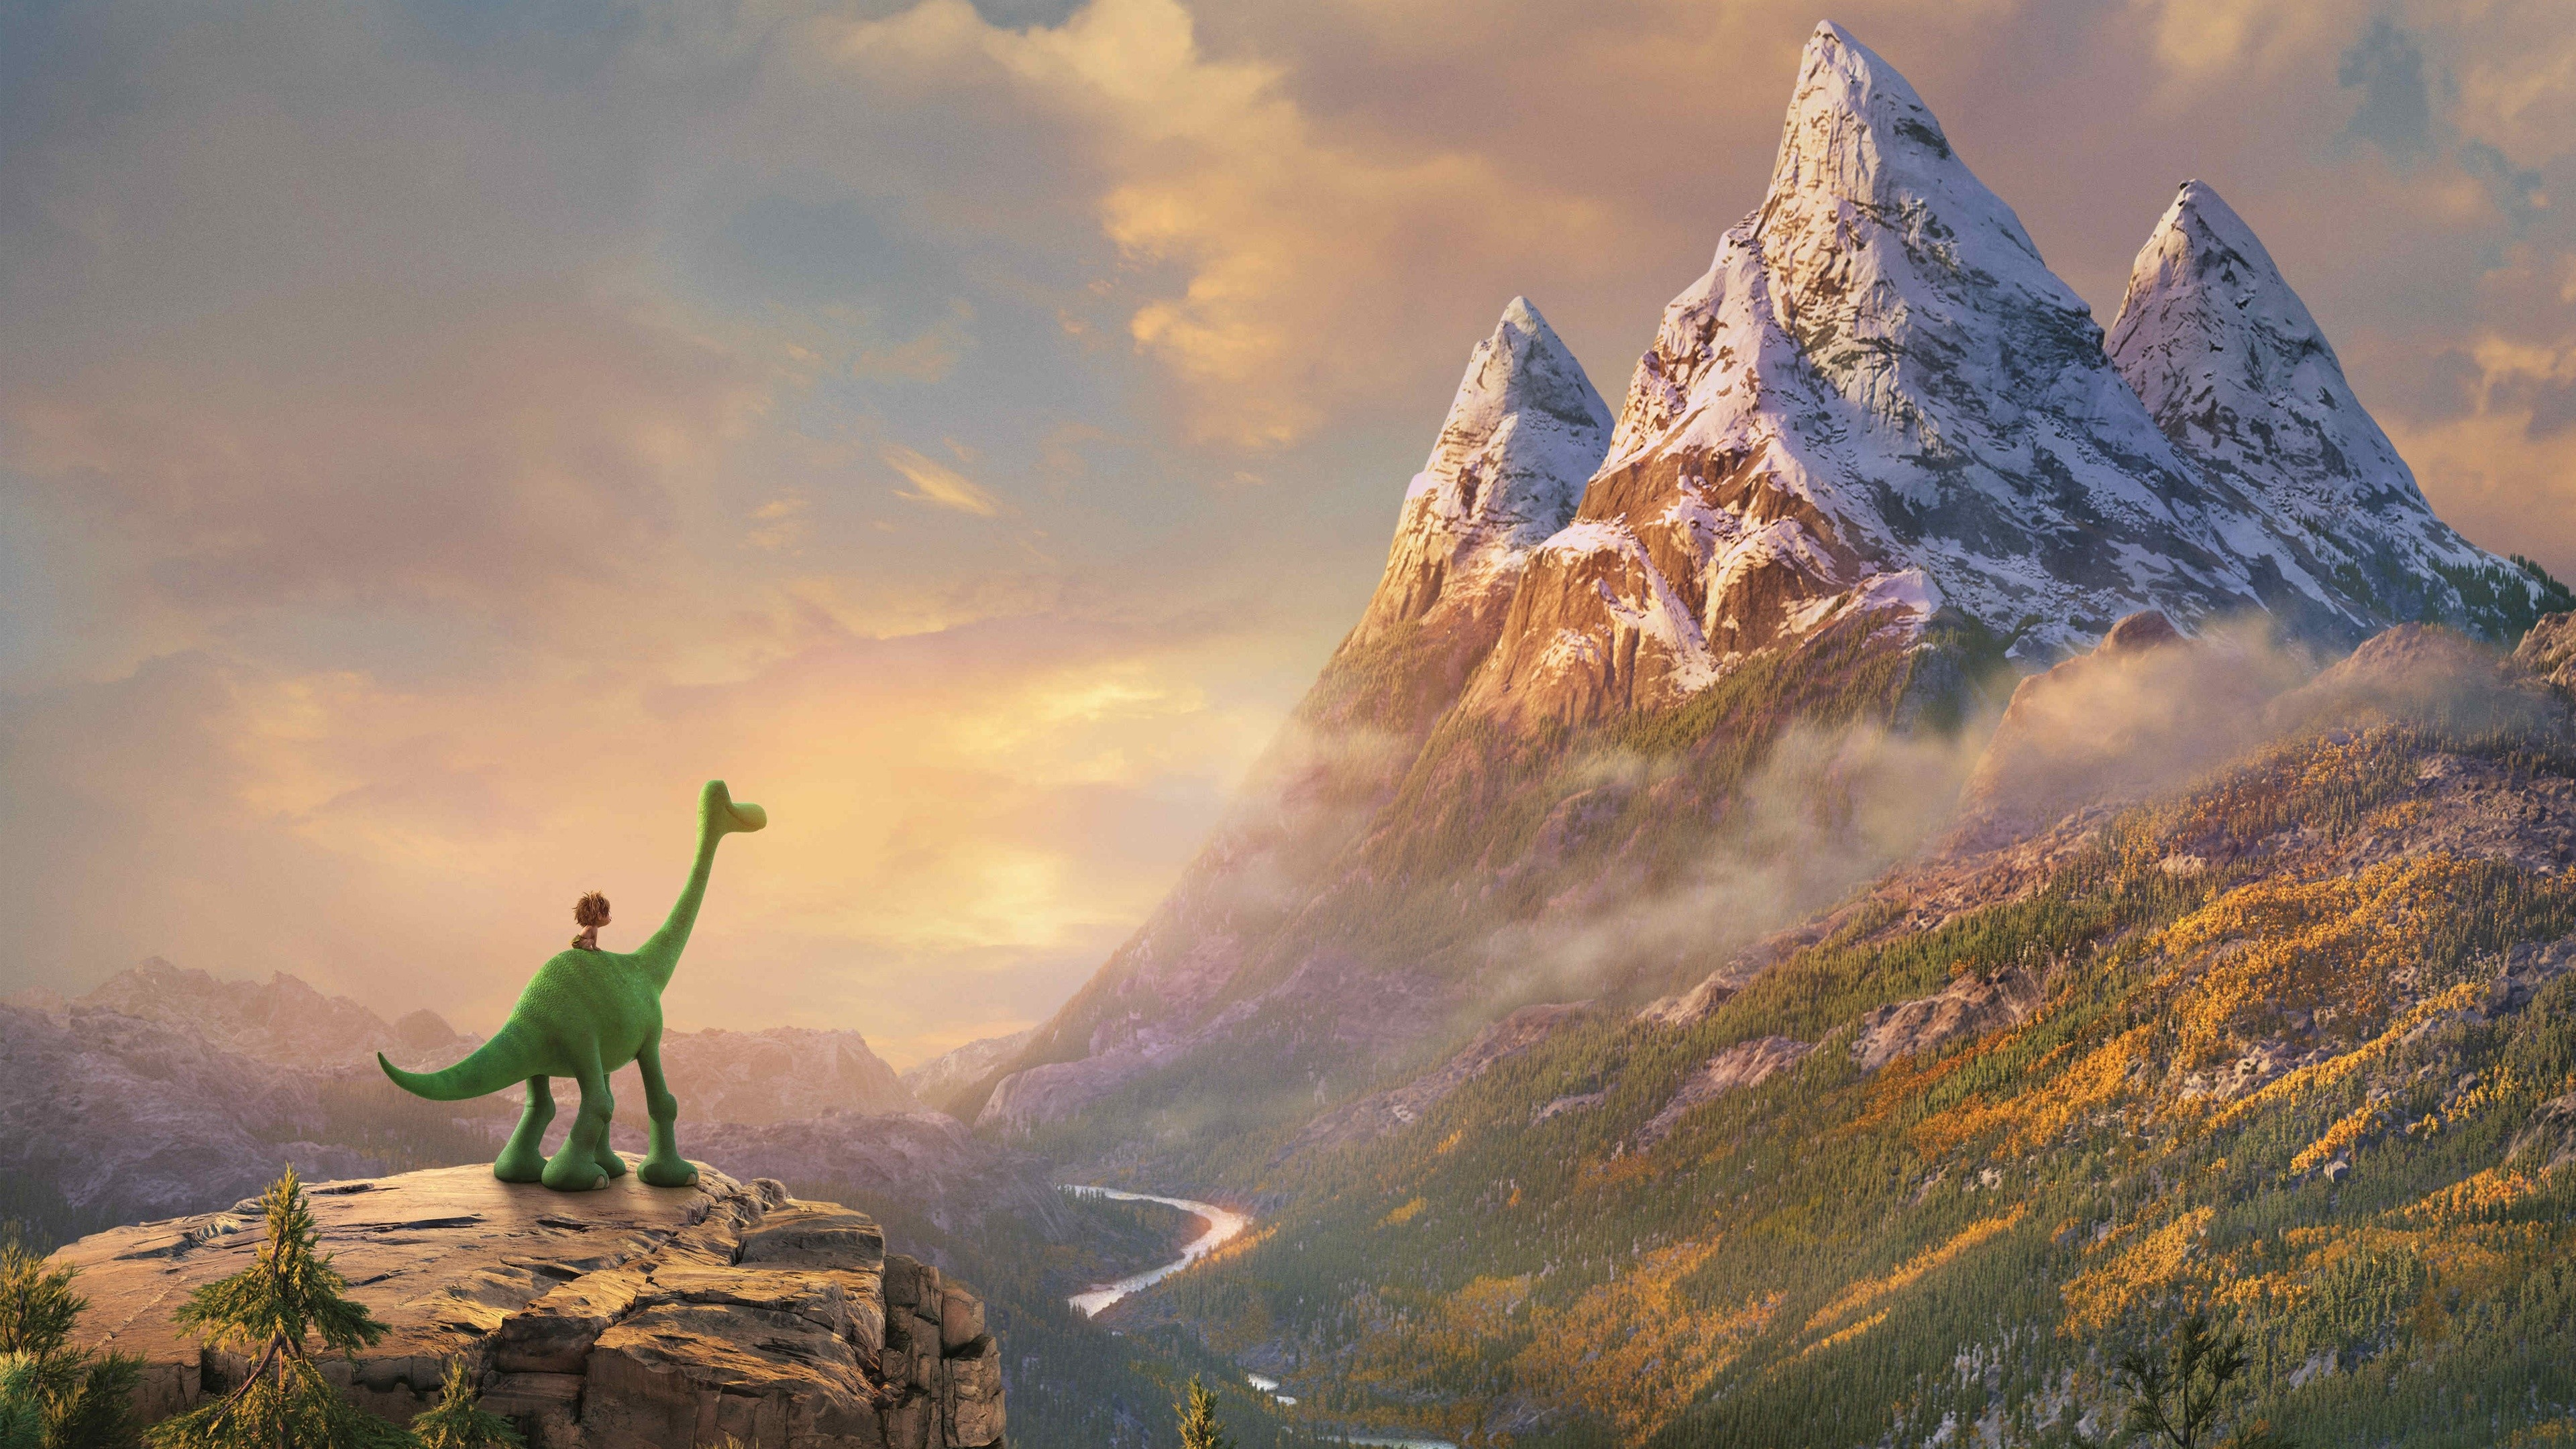 Wallpaper the good dinosaur mount movies 7180 for Good home wallpaper